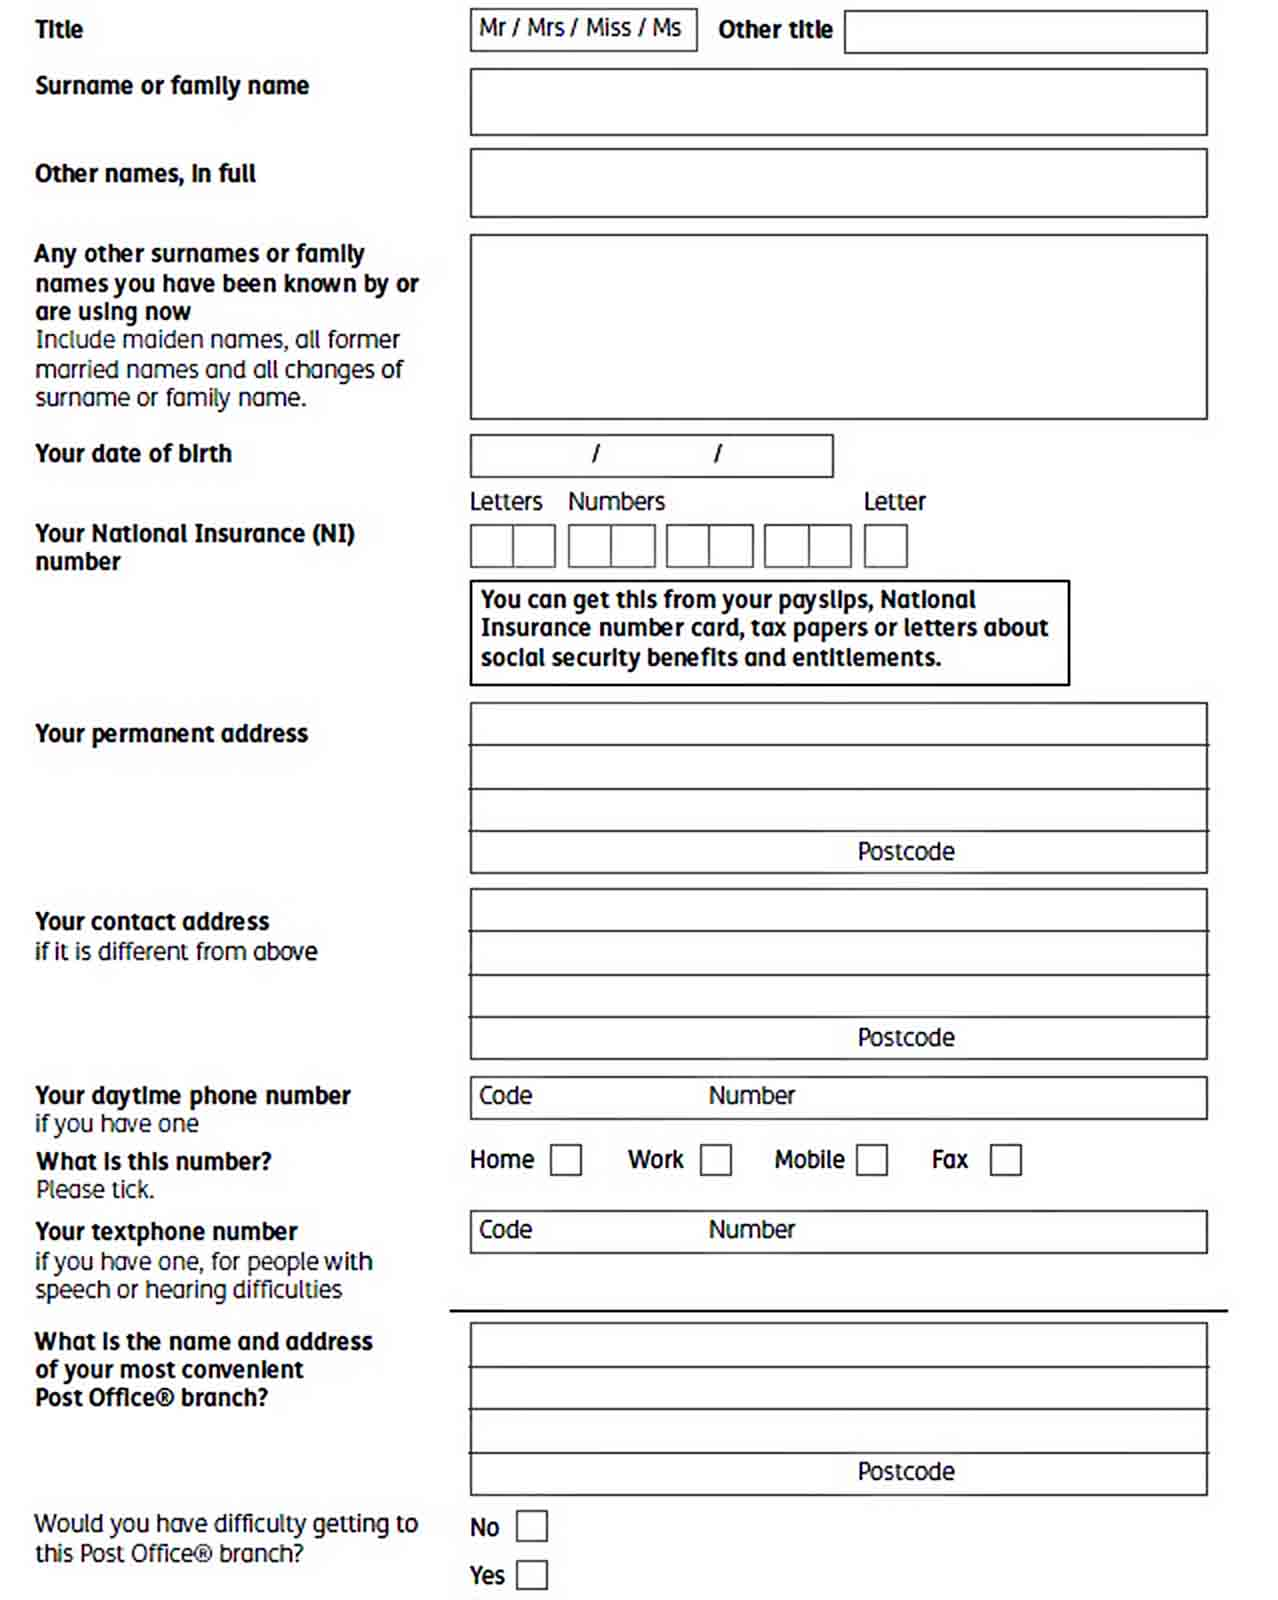 Pension Credit Applicaion Form Template sample